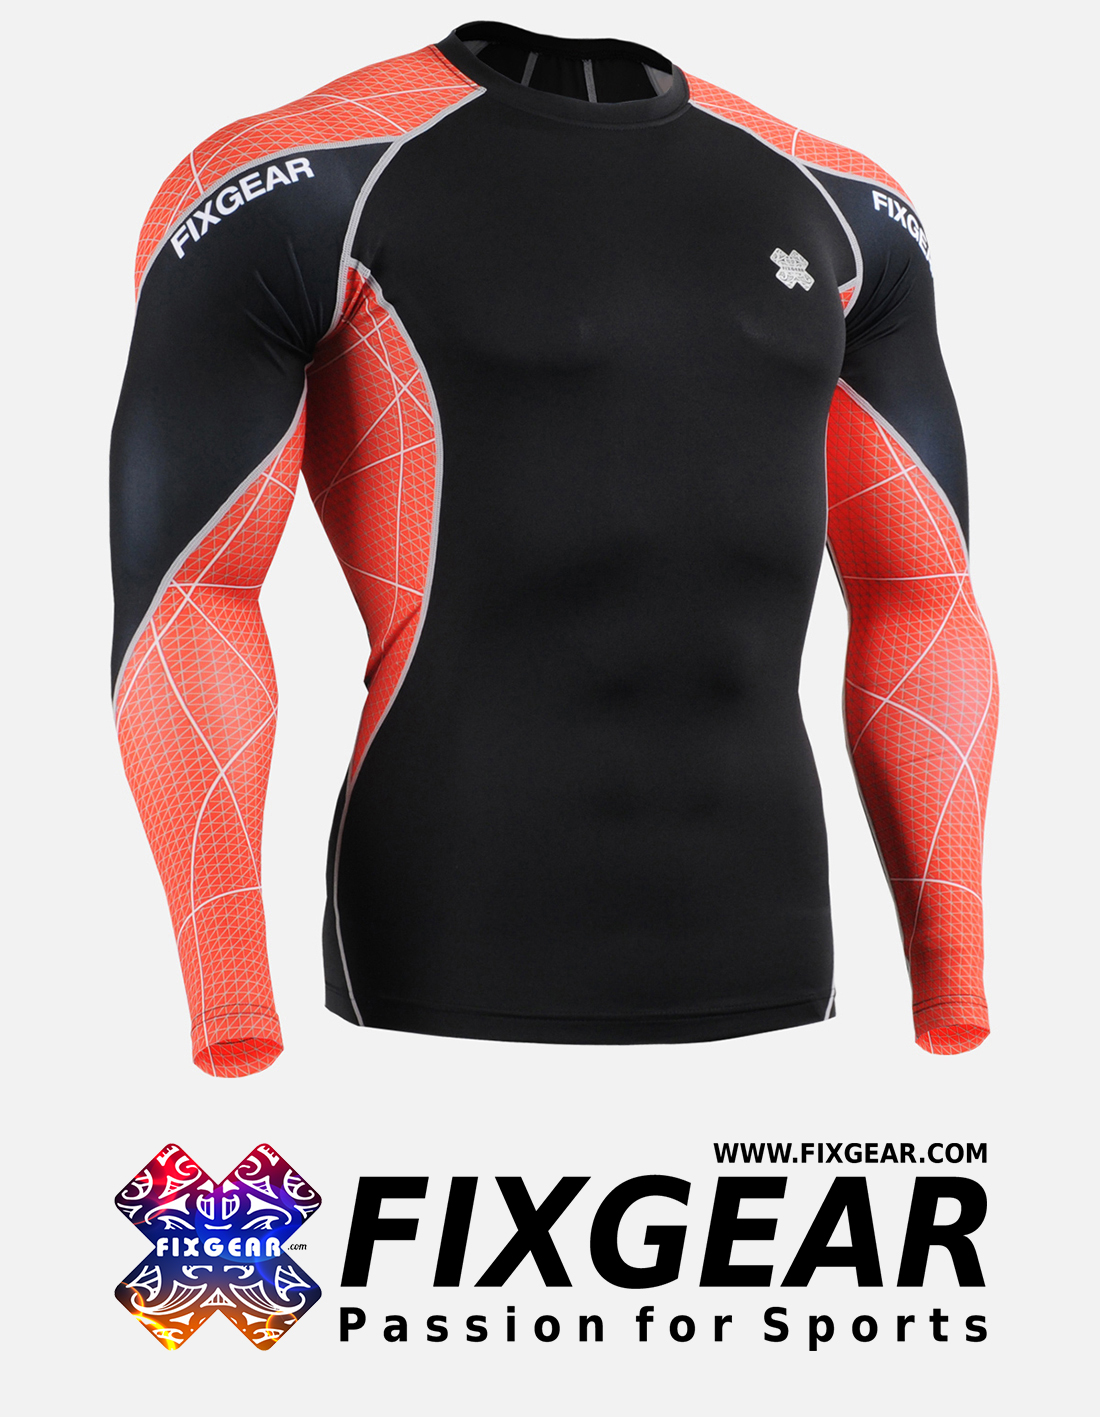 FIXGEAR C3L-B70R Compression Base Layer Shirt